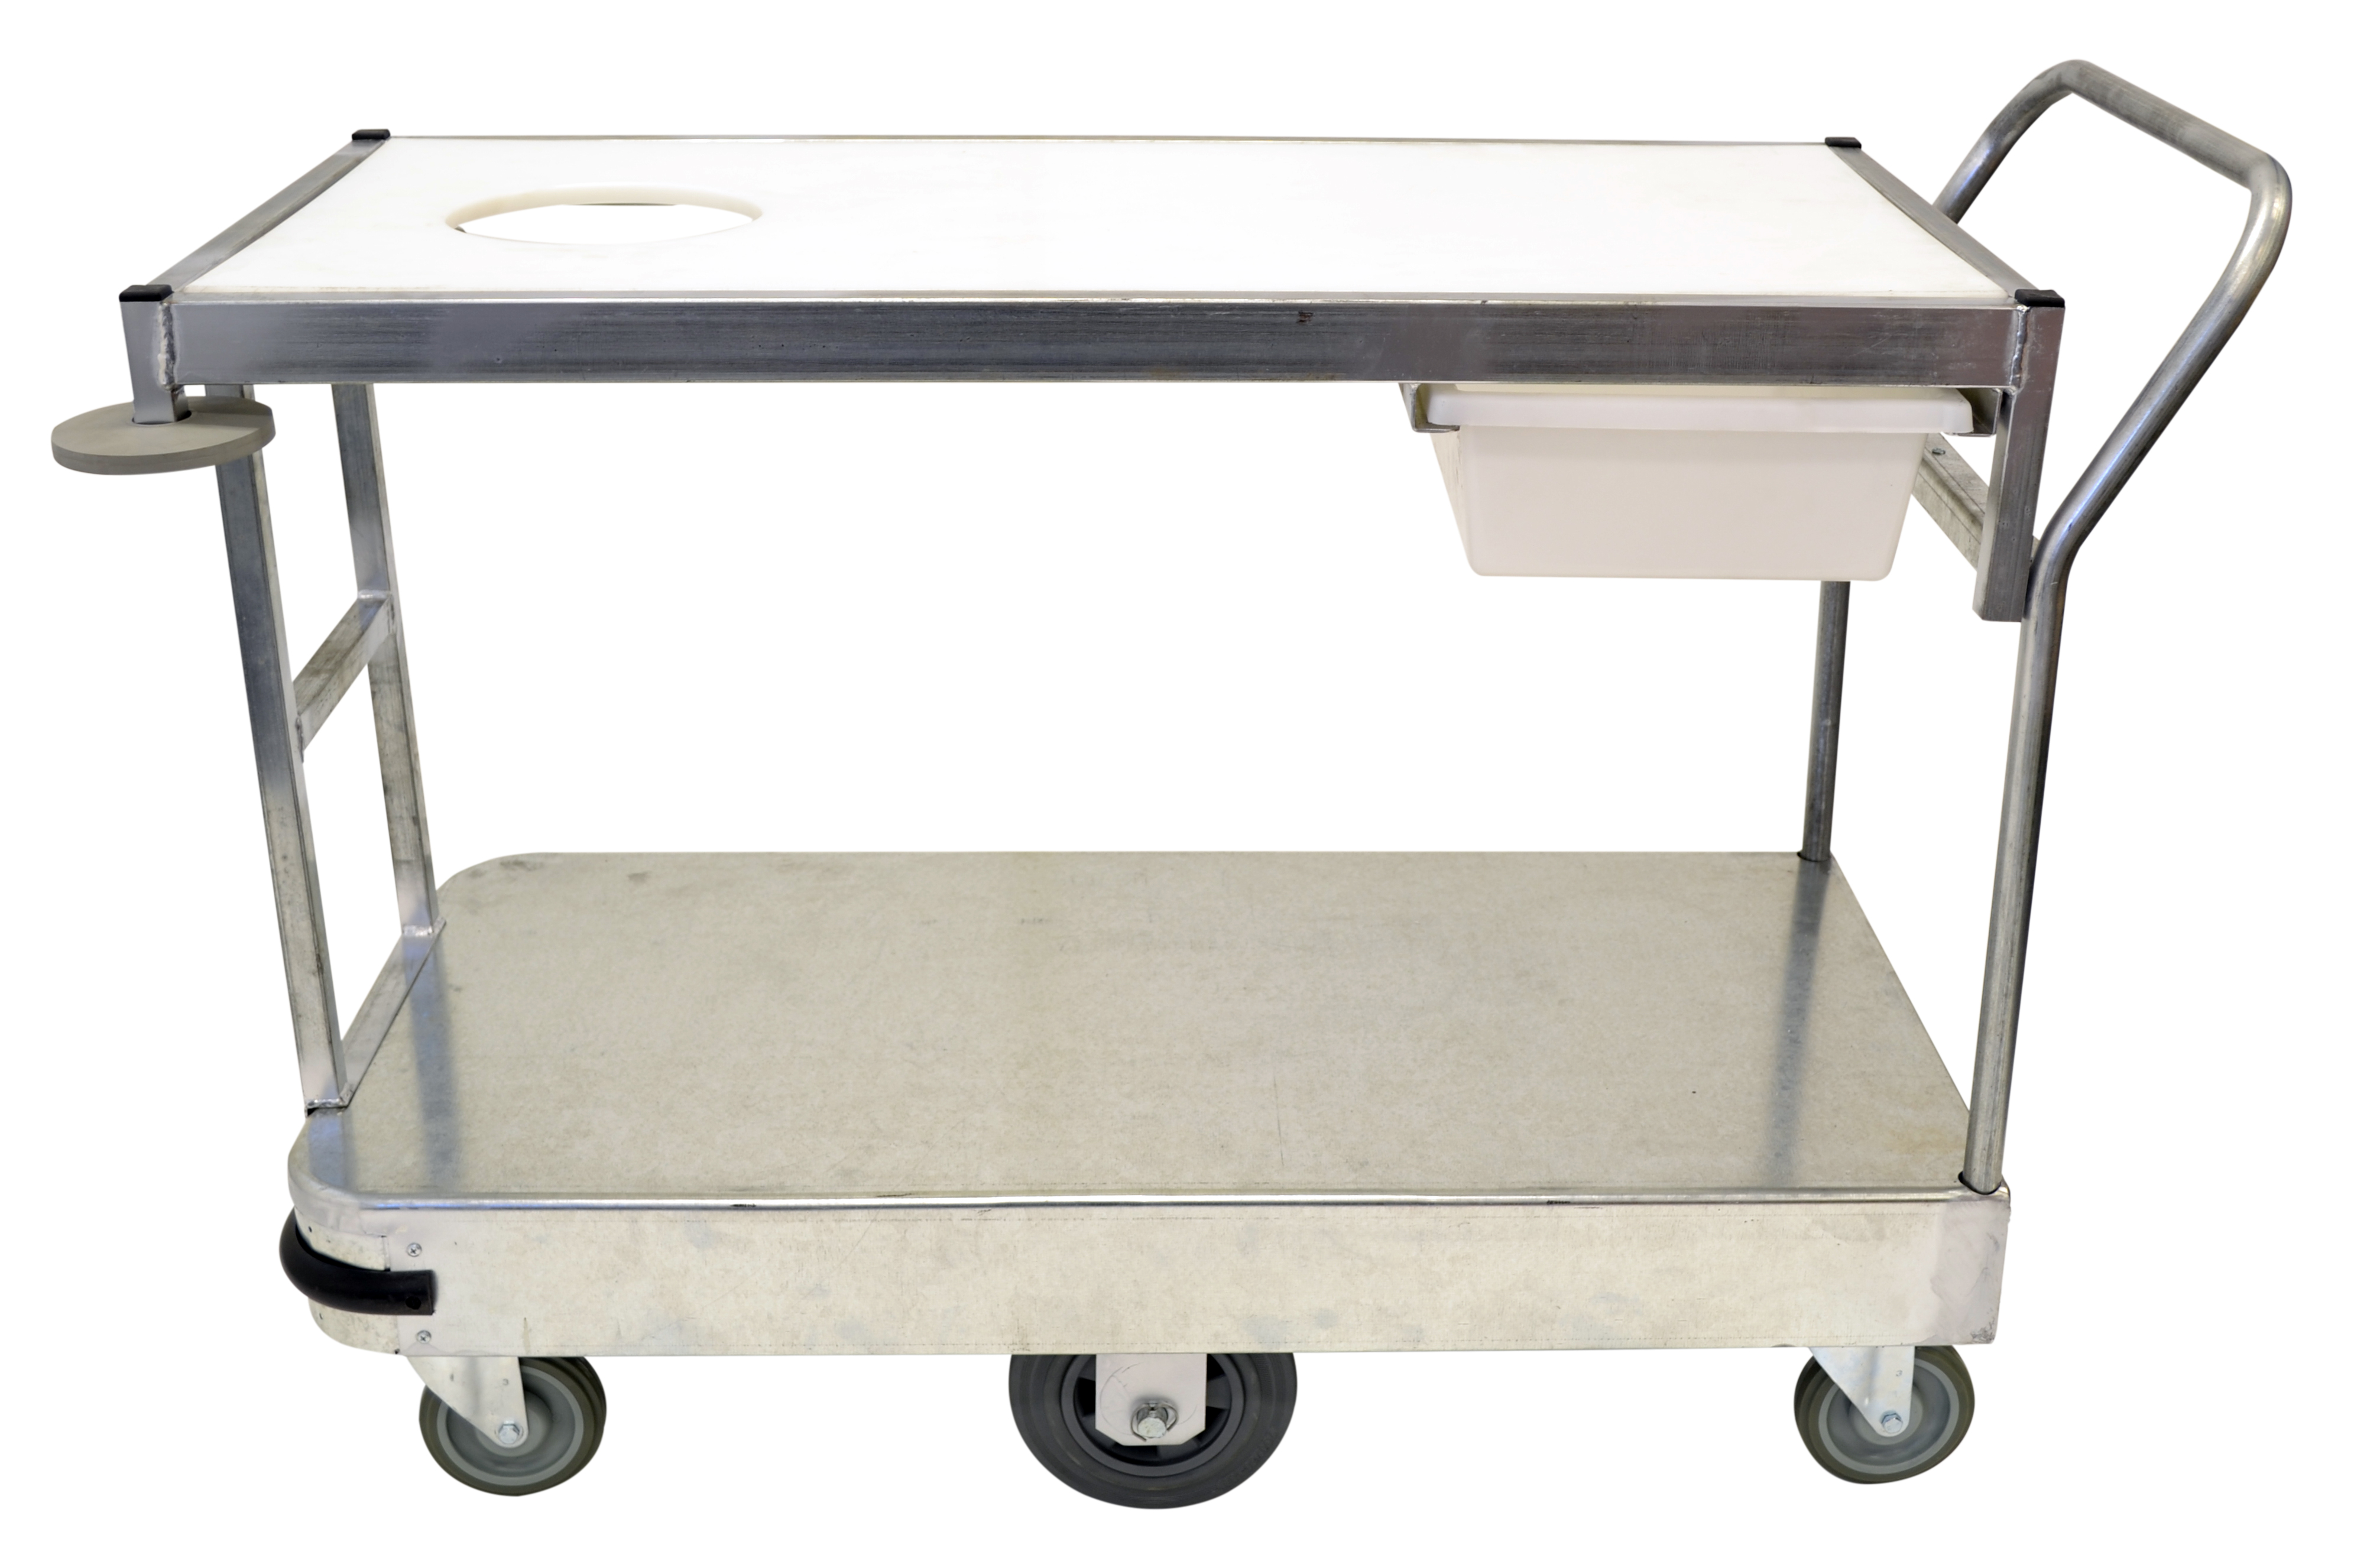 This fruit & vegetable trolley is made for trimming and preparing produce while topping up stock in the sales area. With its polyethylene chopping board on the top & knife utility drawer, it's the perfect trolley for fruit shops & produce departments.